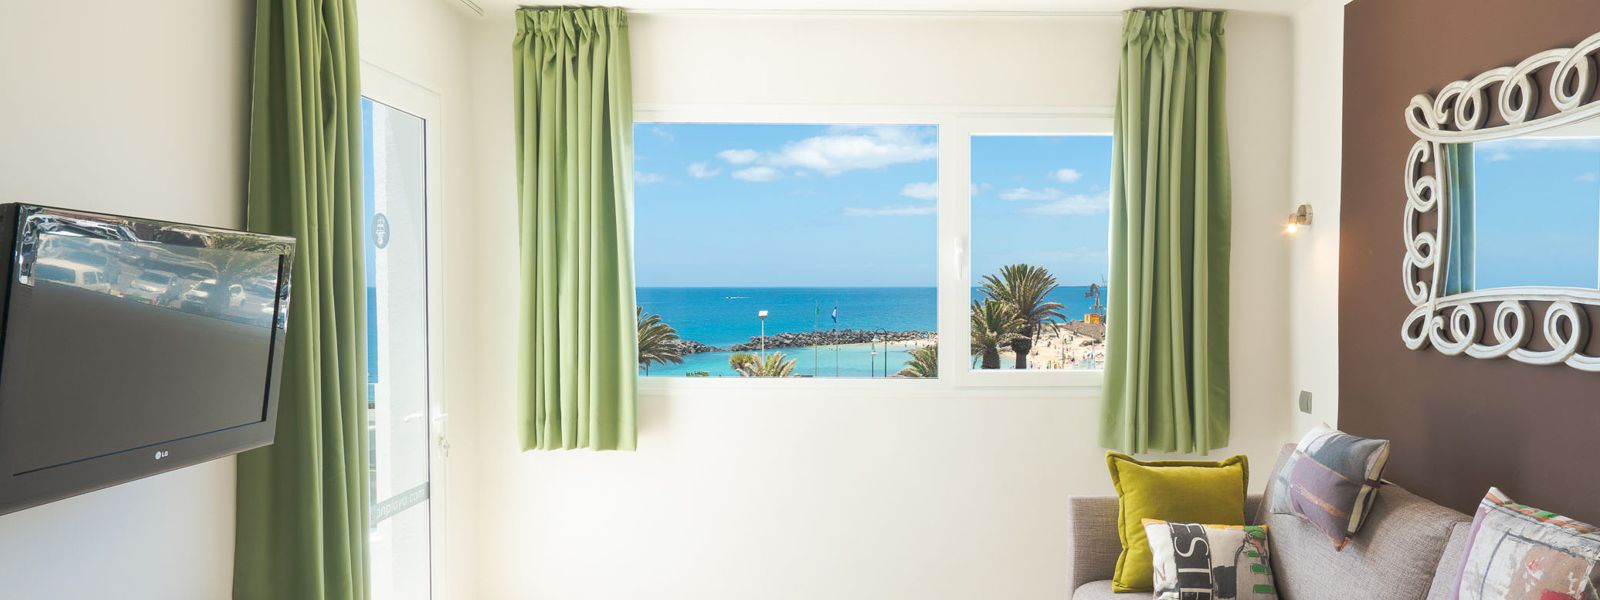 Appartements à Costa Teguise